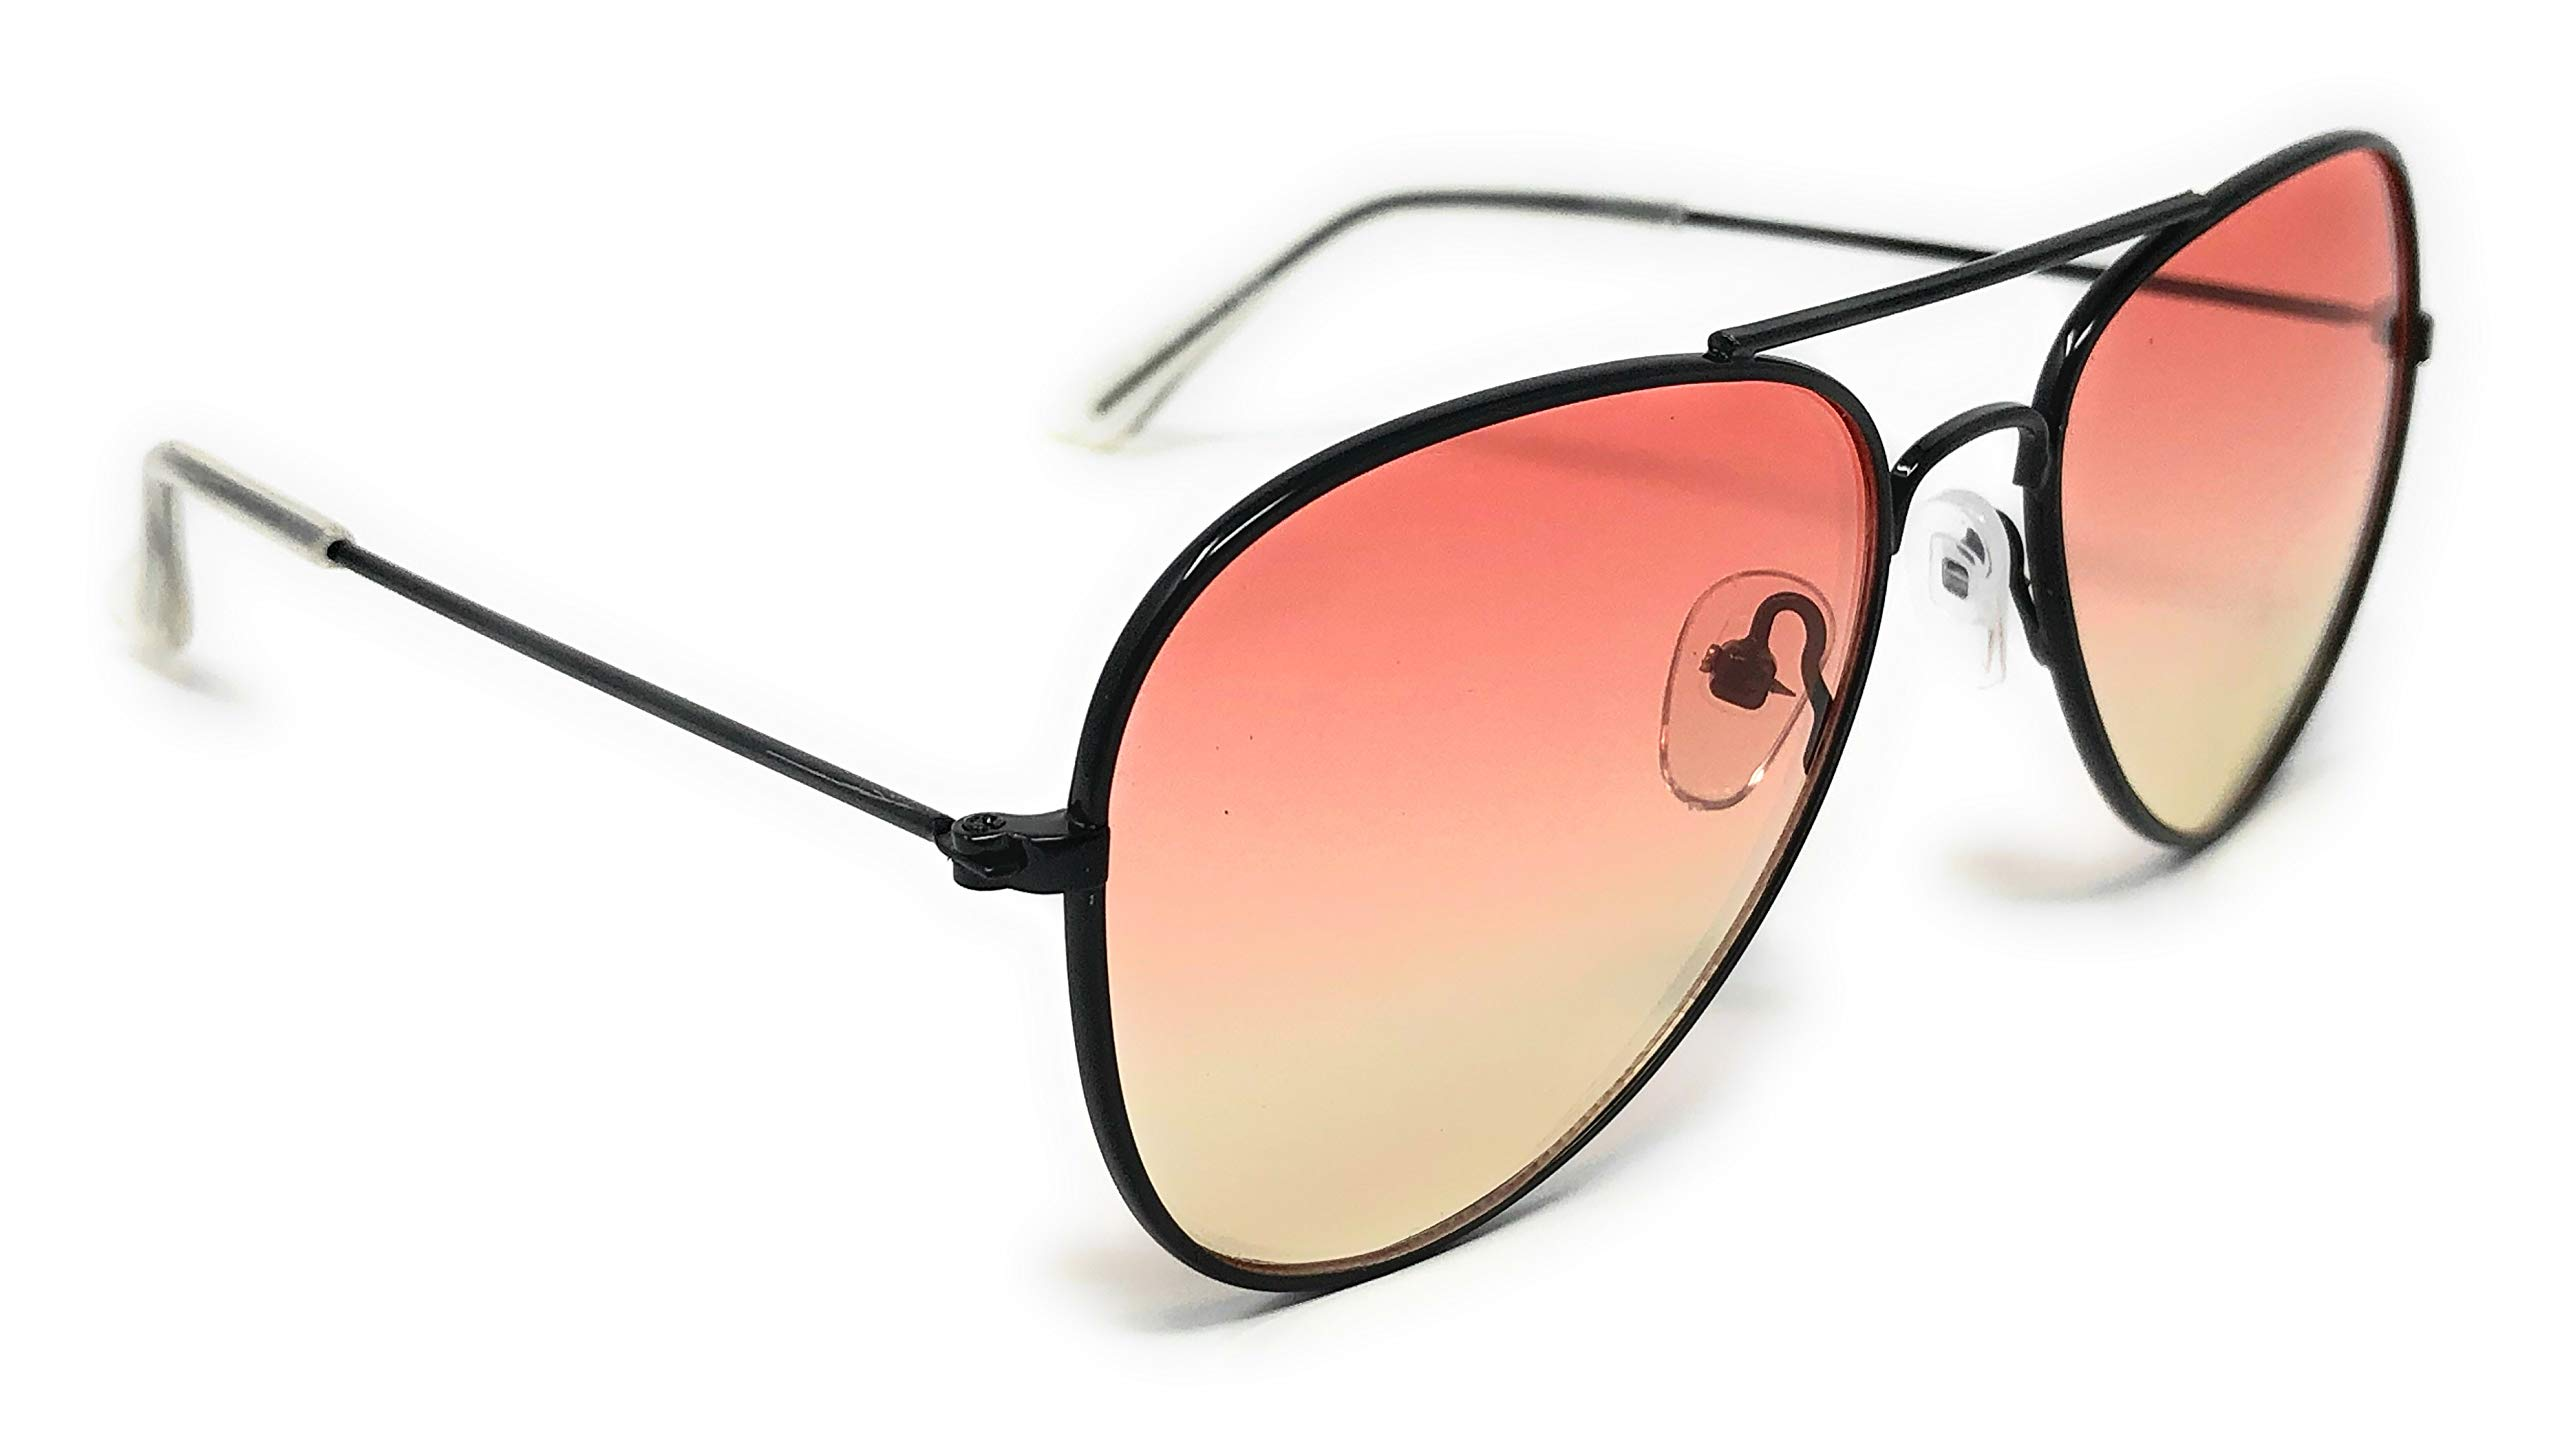 My Shades - Little Children's Kids Classic Retro Aviator Sunglasses Metal Frame Ages 2 to 5 (Two Tone, Orange/Yellow) by WebDeals (Image #3)